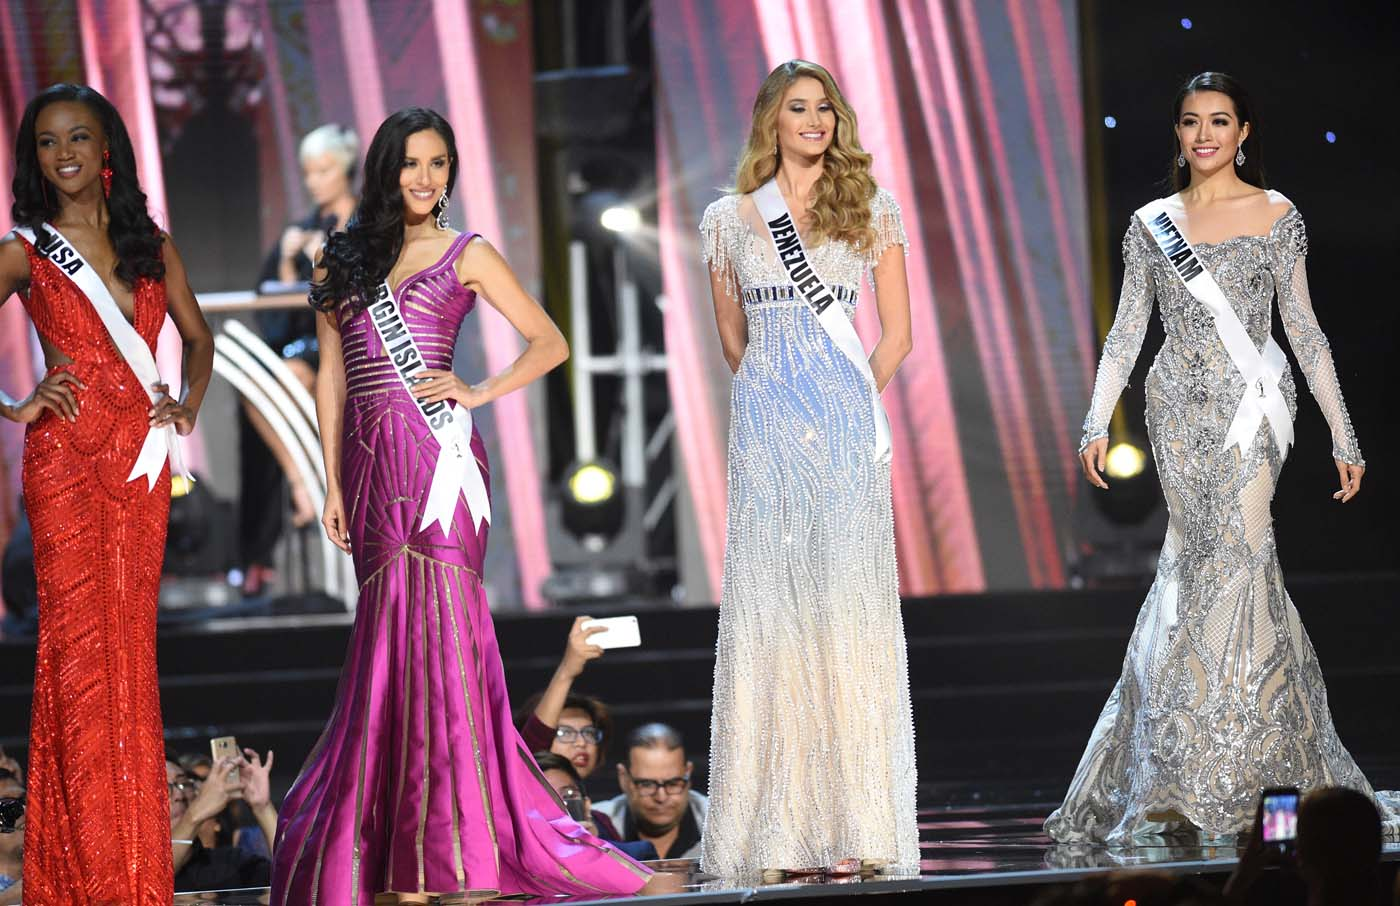 This photo taken on January 26, 2017 shows Miss Universe contestant Le Hang (R) of Vietnam in her long gown along with other candidates during the preliminary competition of the Miss Universe pageant at the Mall of Asia arena in Manila. / AFP PHOTO / TED ALJIBE